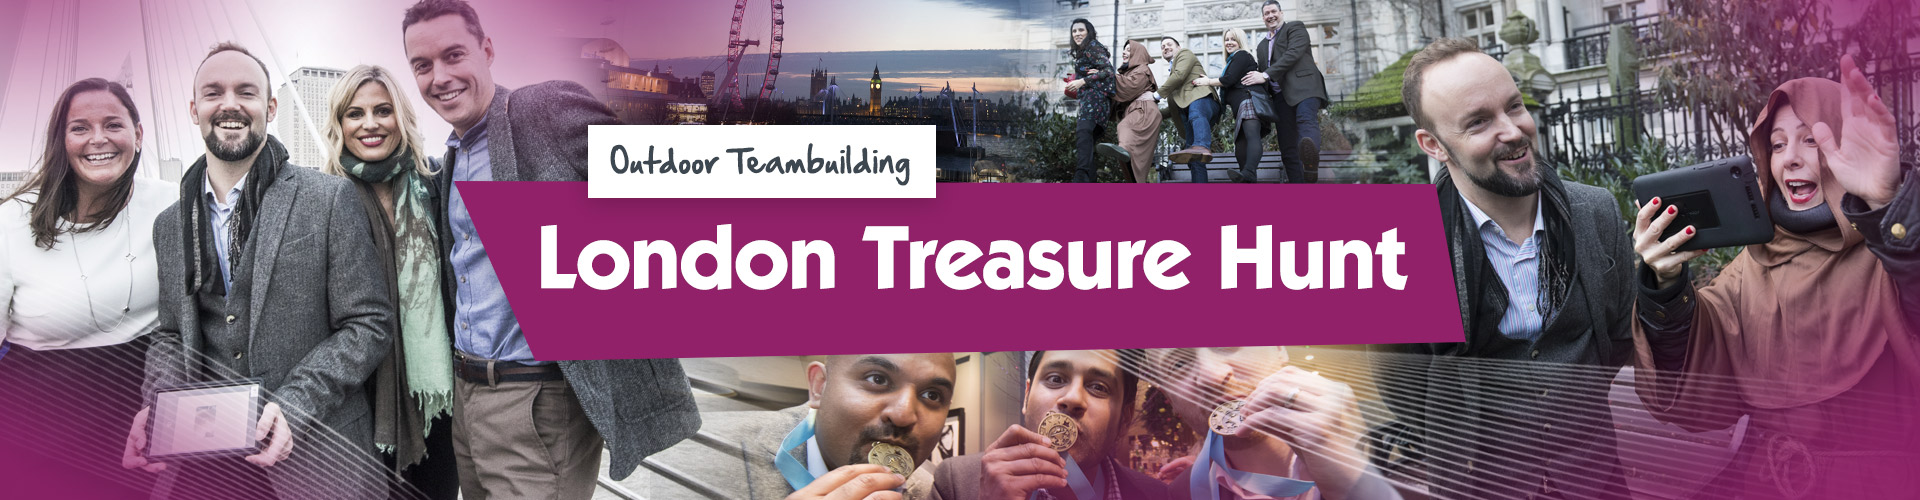 Teambuilding | London Treasure Hunt